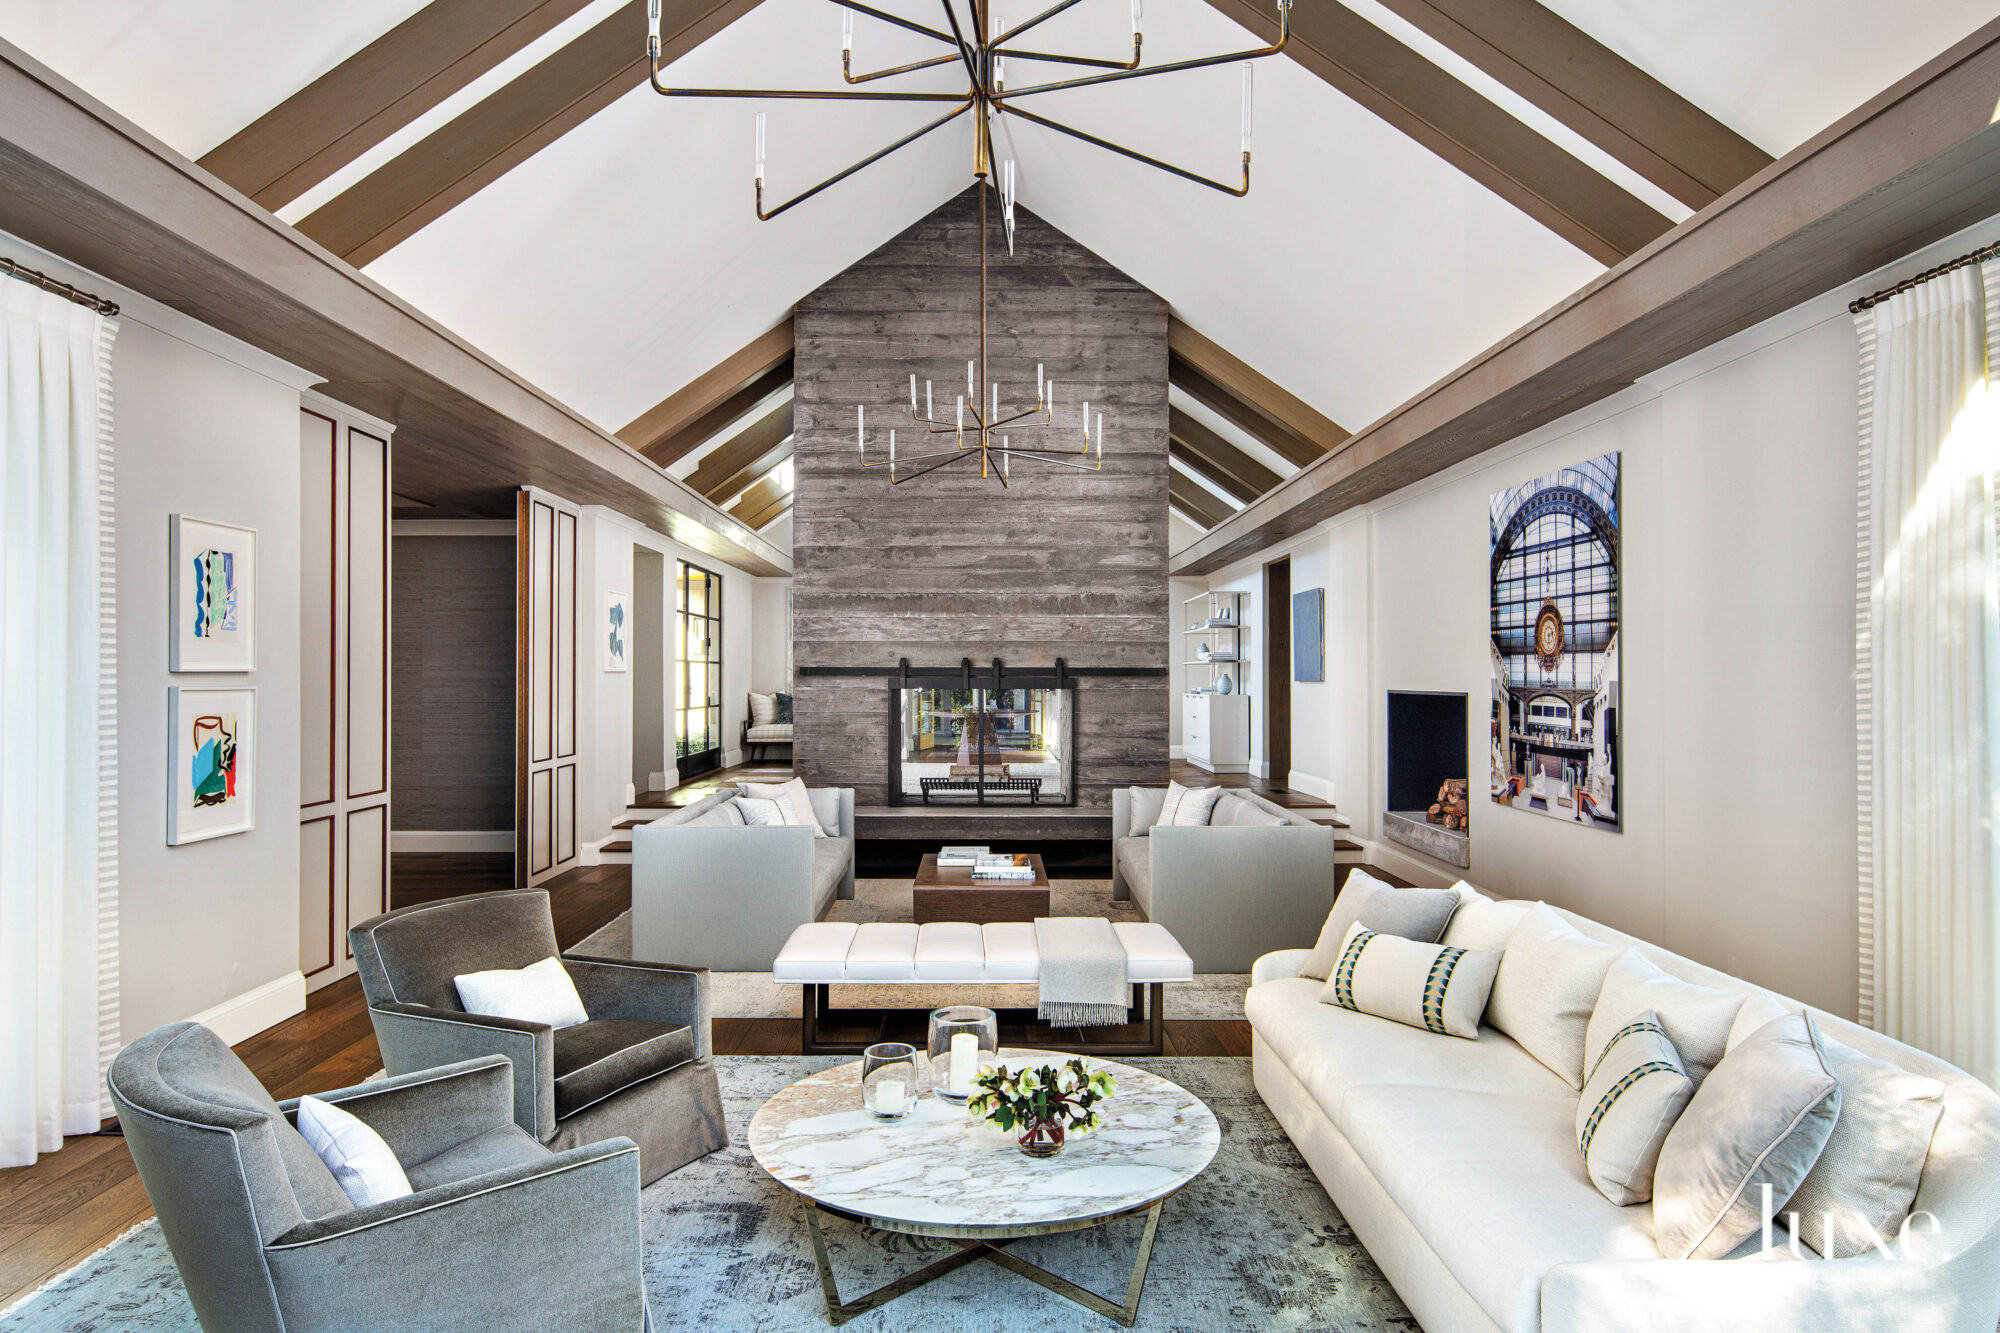 The living room features a seating area in front of the fireplace.